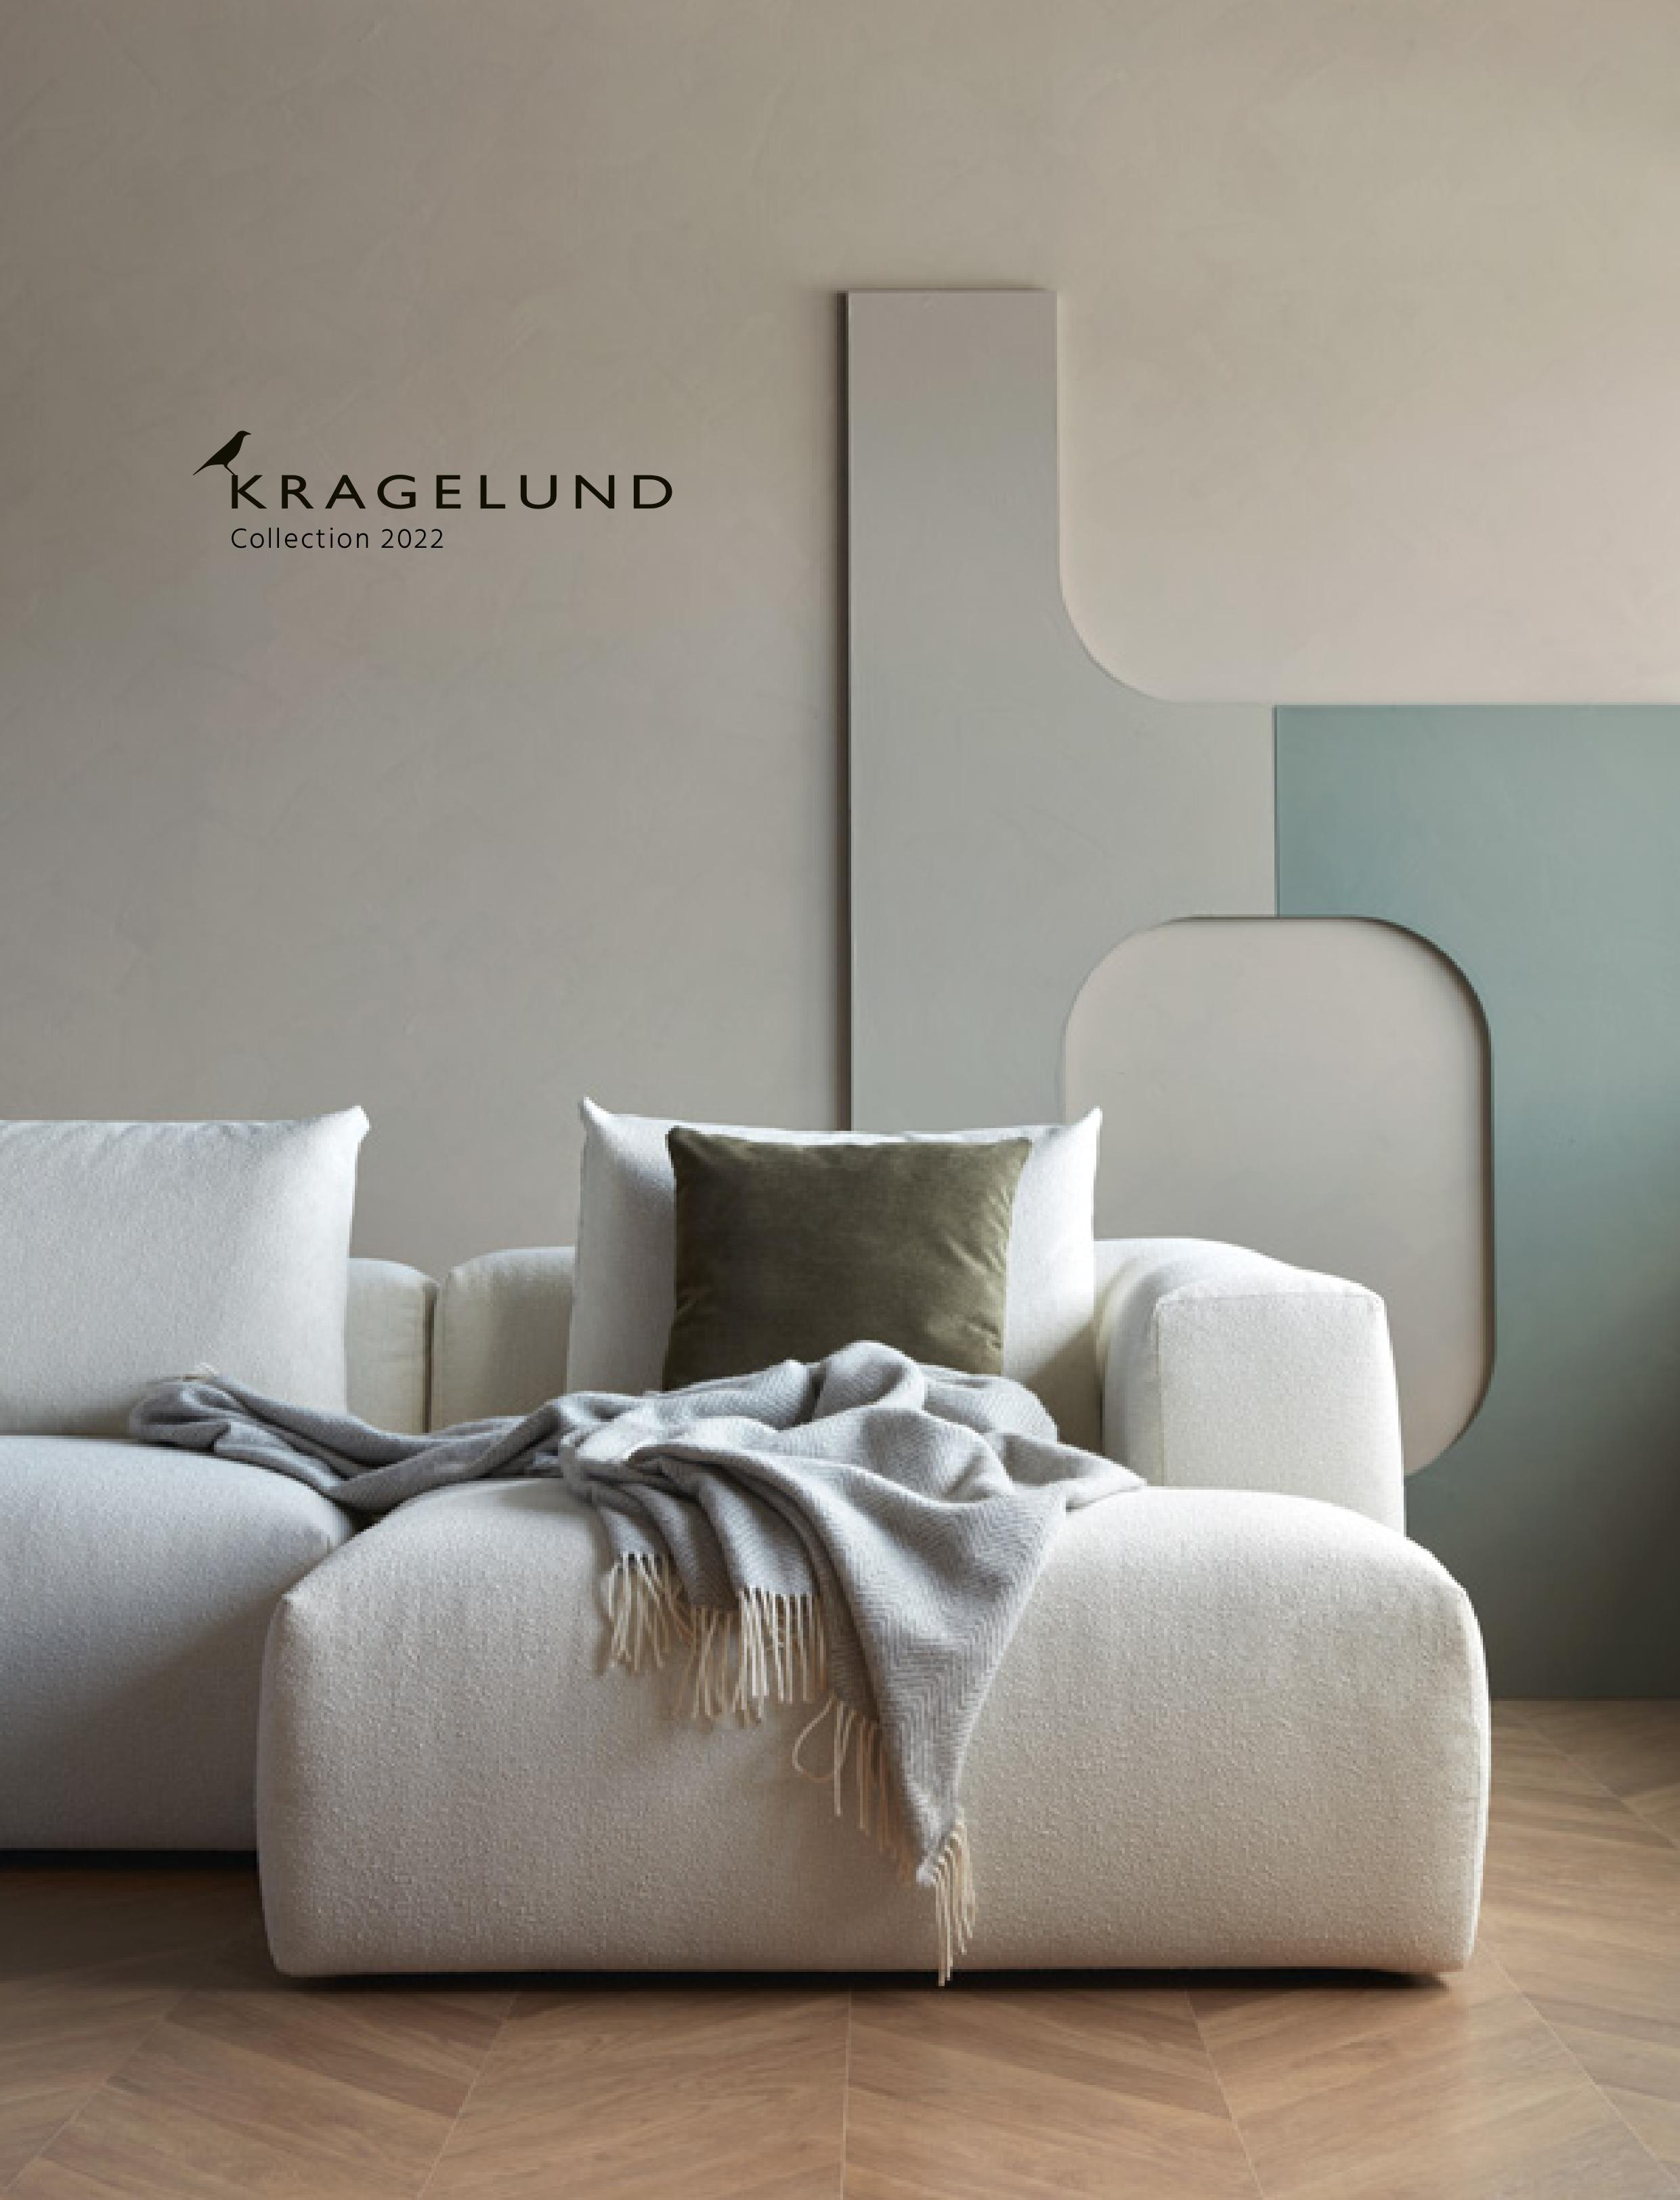 kragelund-catalogue-cover.jpg